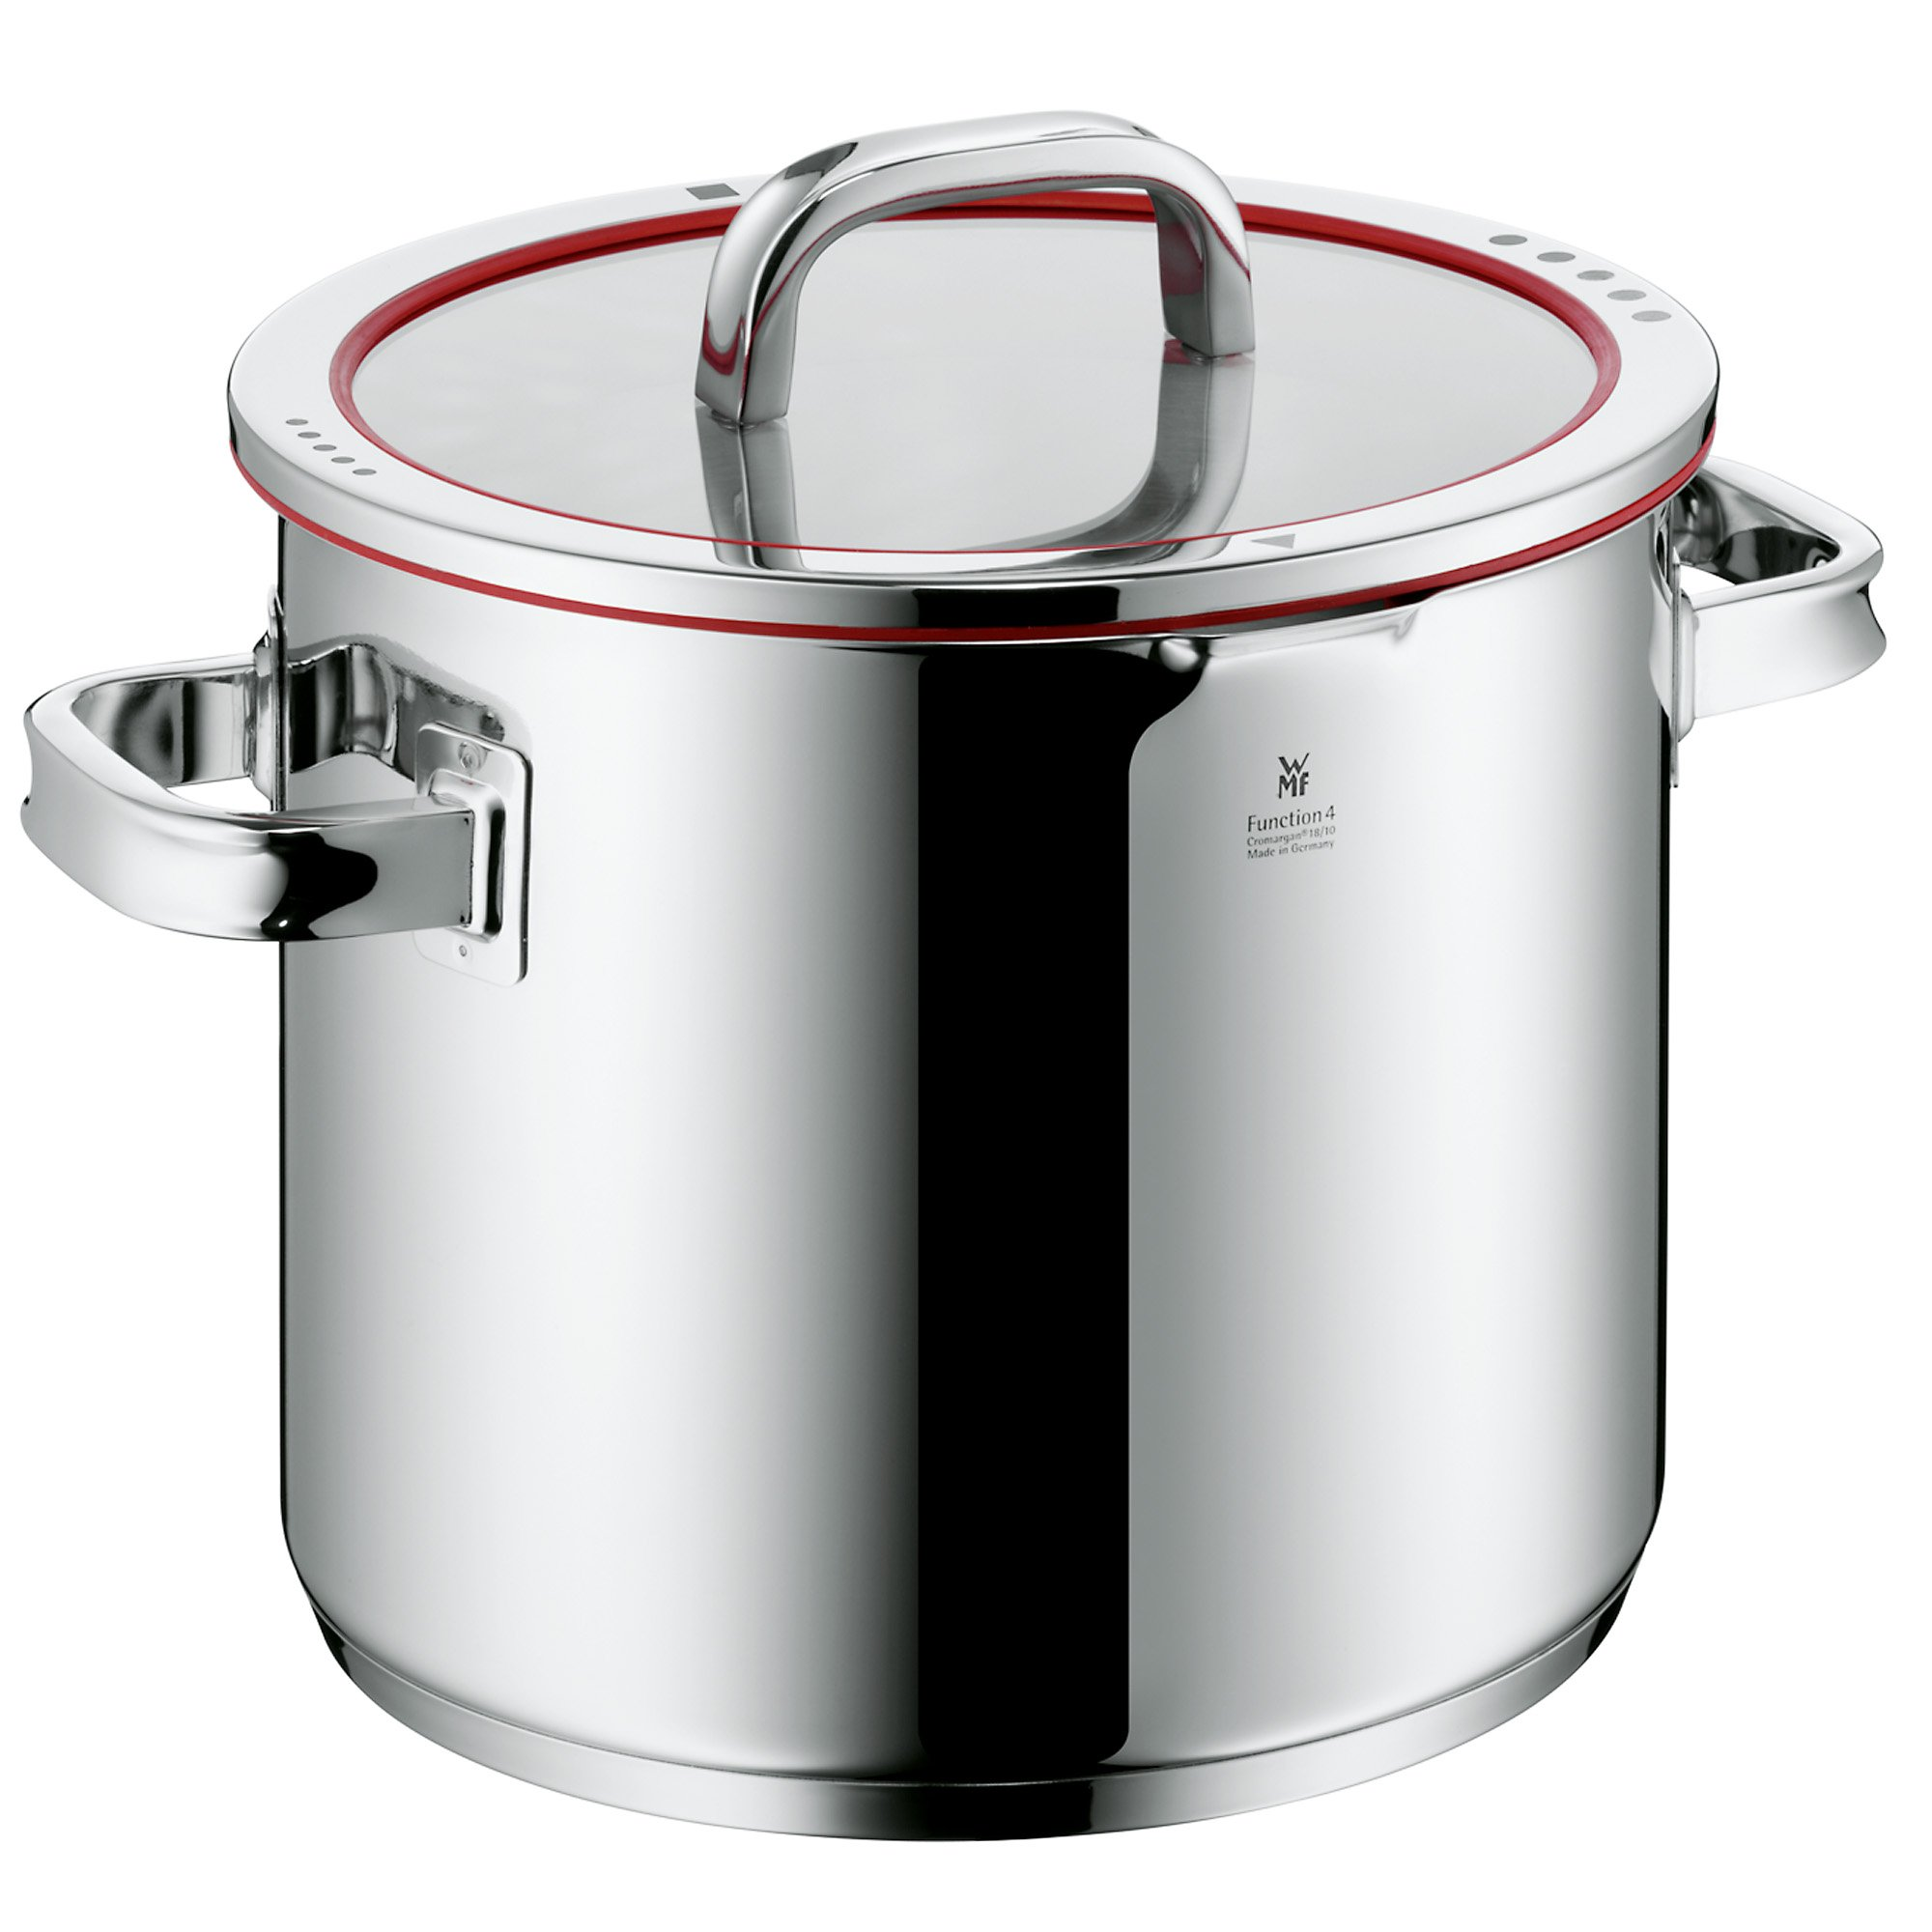 WMF Function 4 Pasta/Stock Pot with Lid, 9-Quart